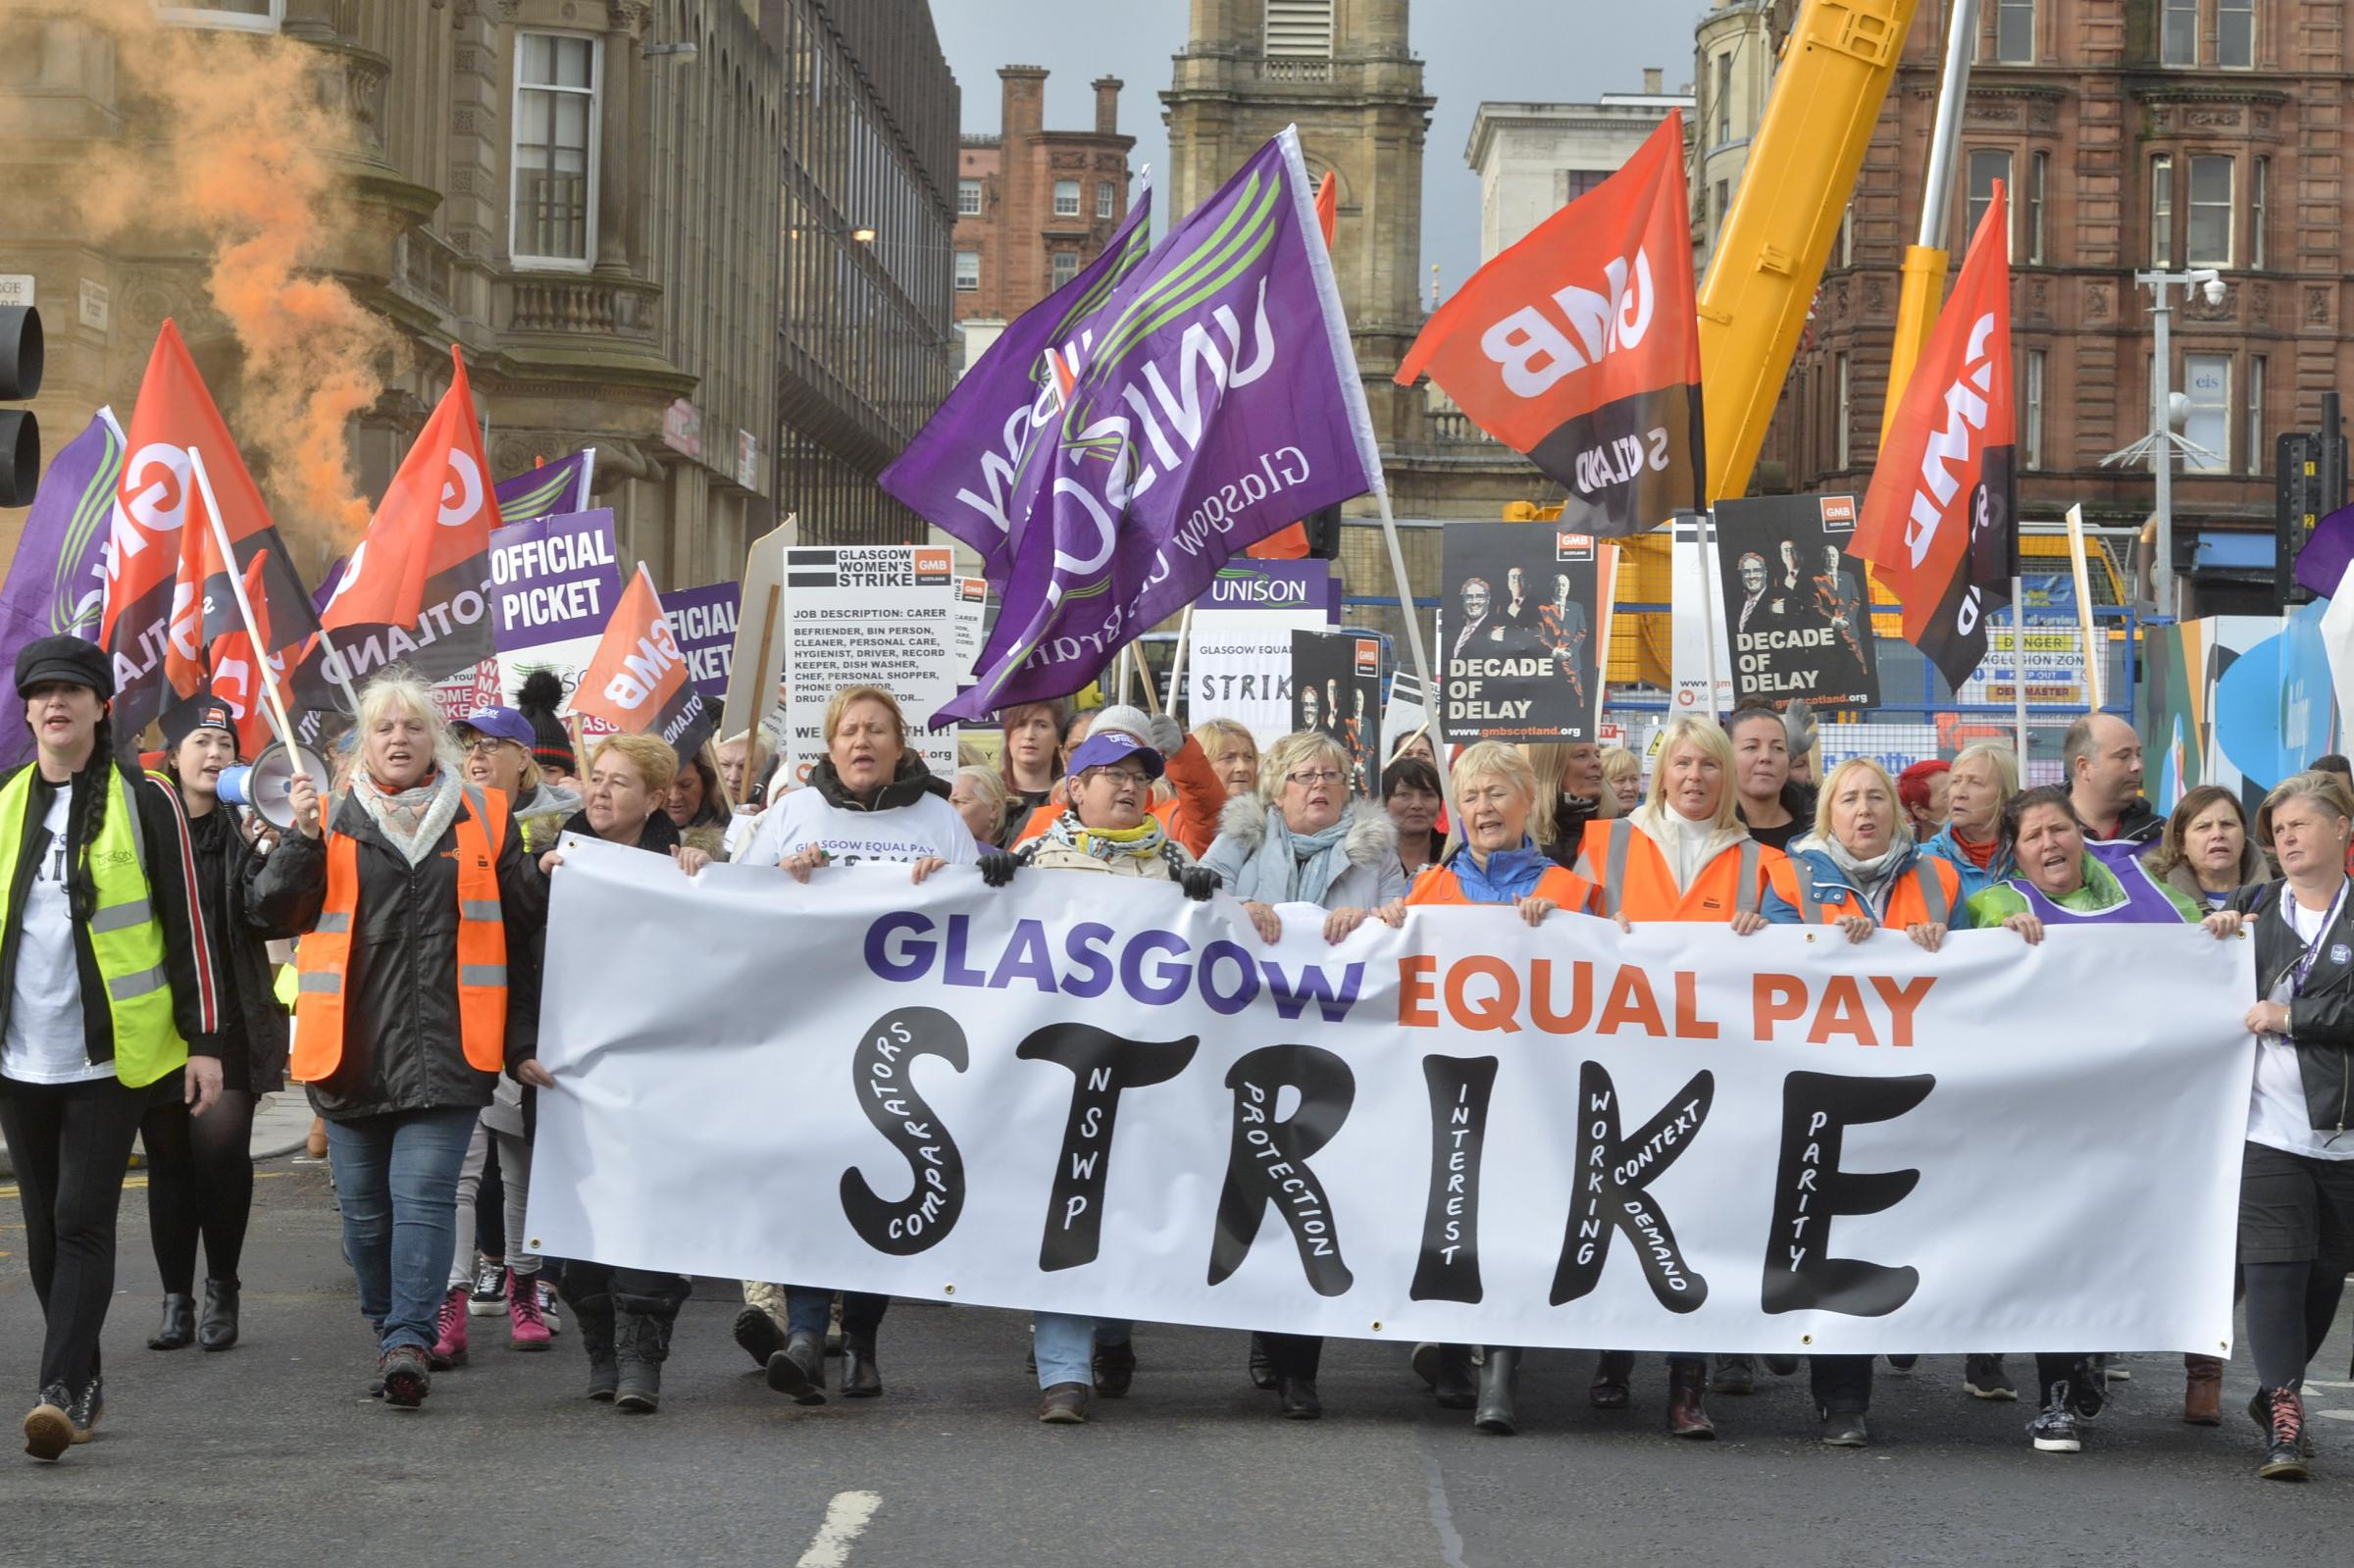 The blog criticised GMB organiser Rhea Wolfson and her role in organising equal pay strikes